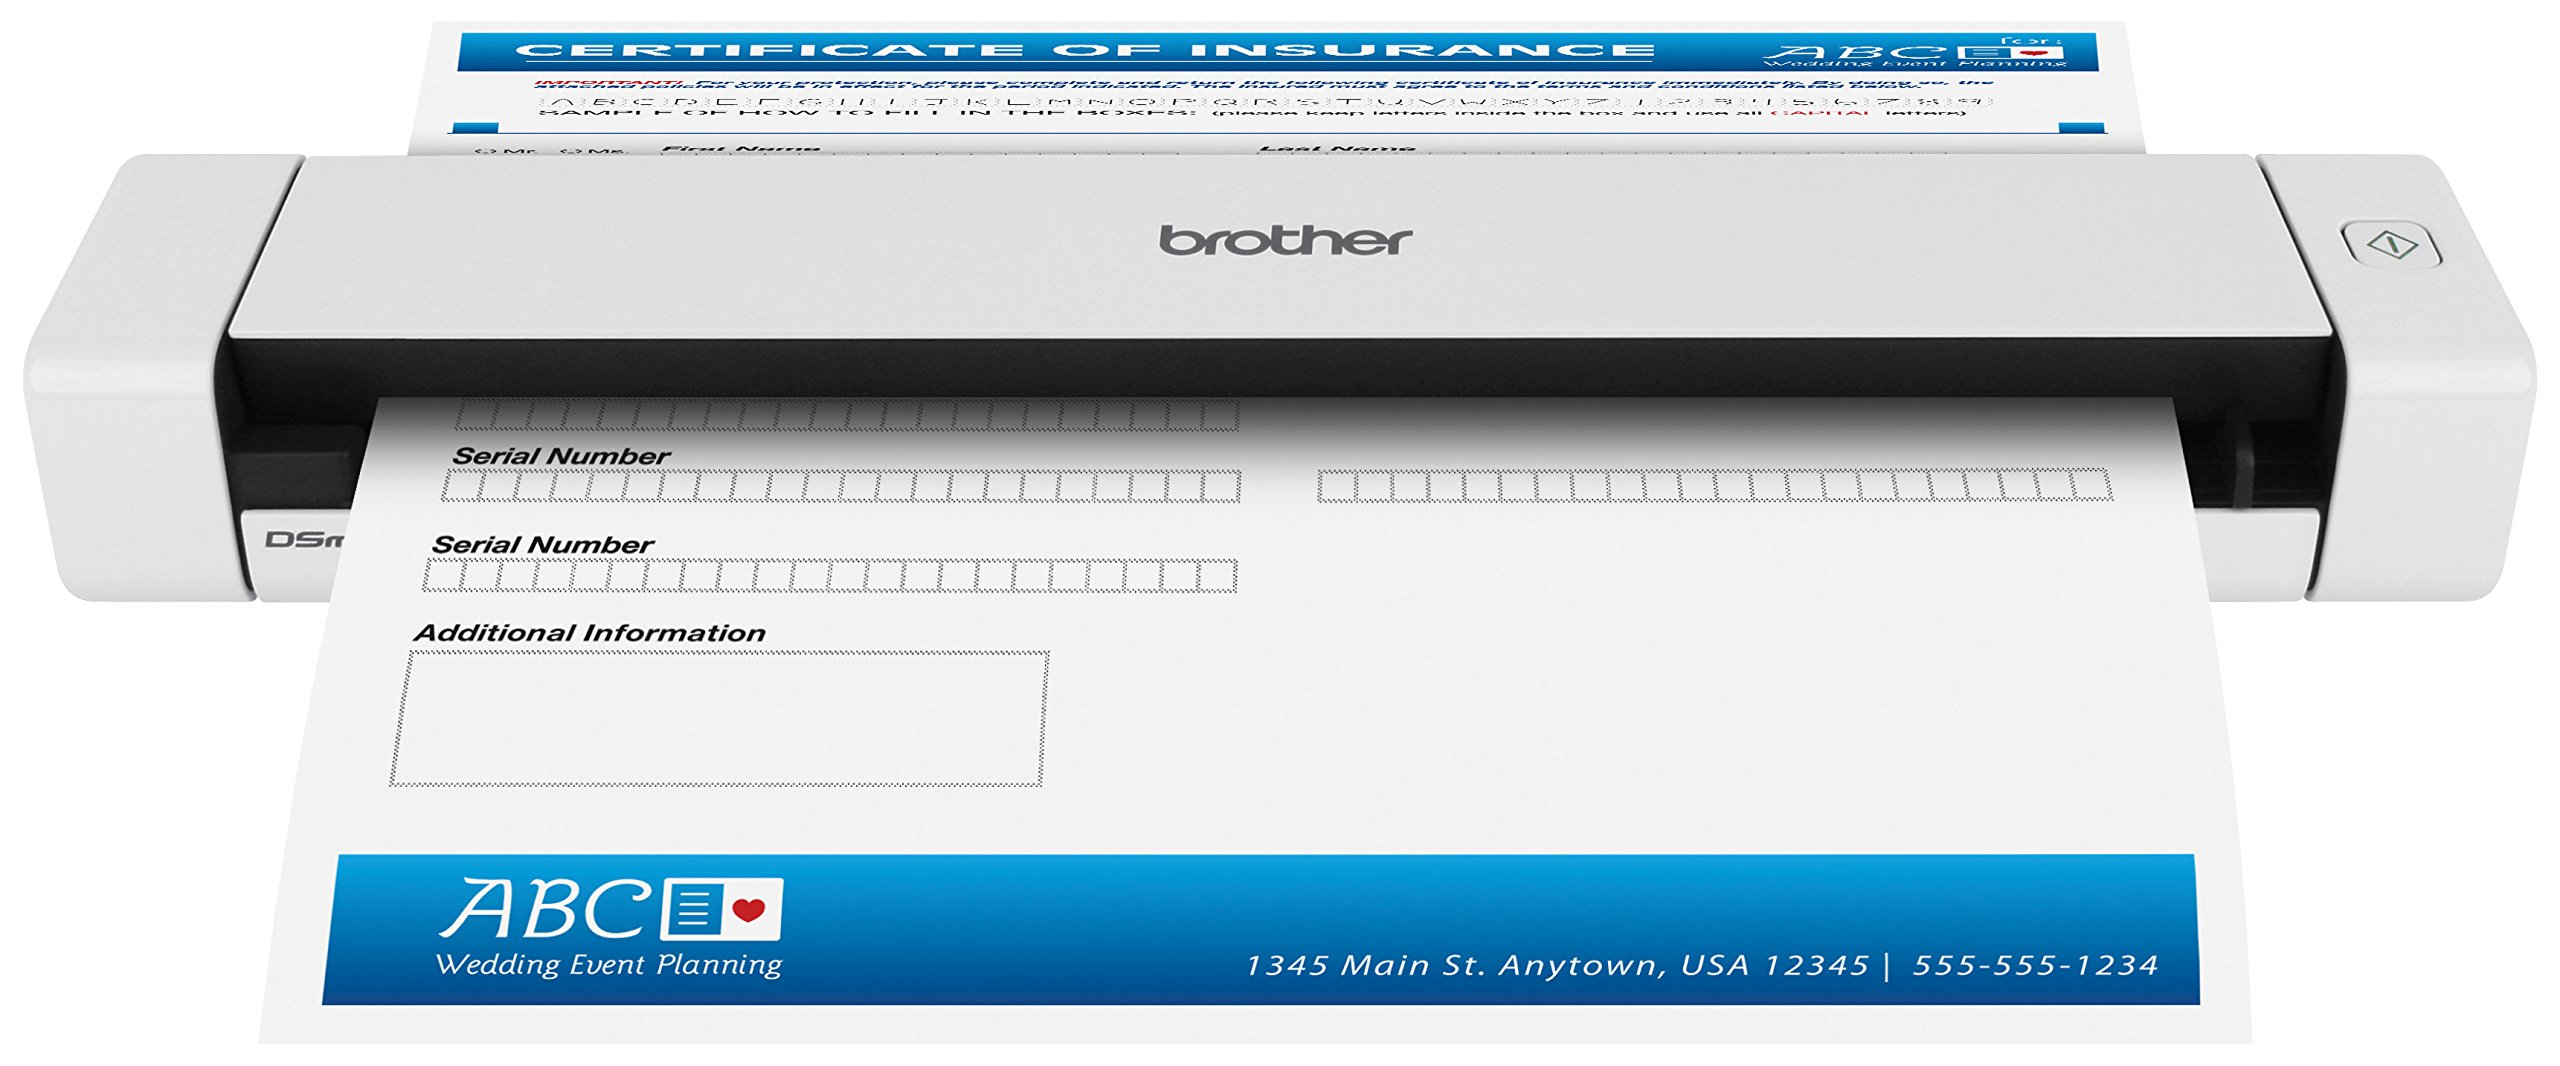 Brother Printer RDS620 Document Scanner (Renewed) by Brother